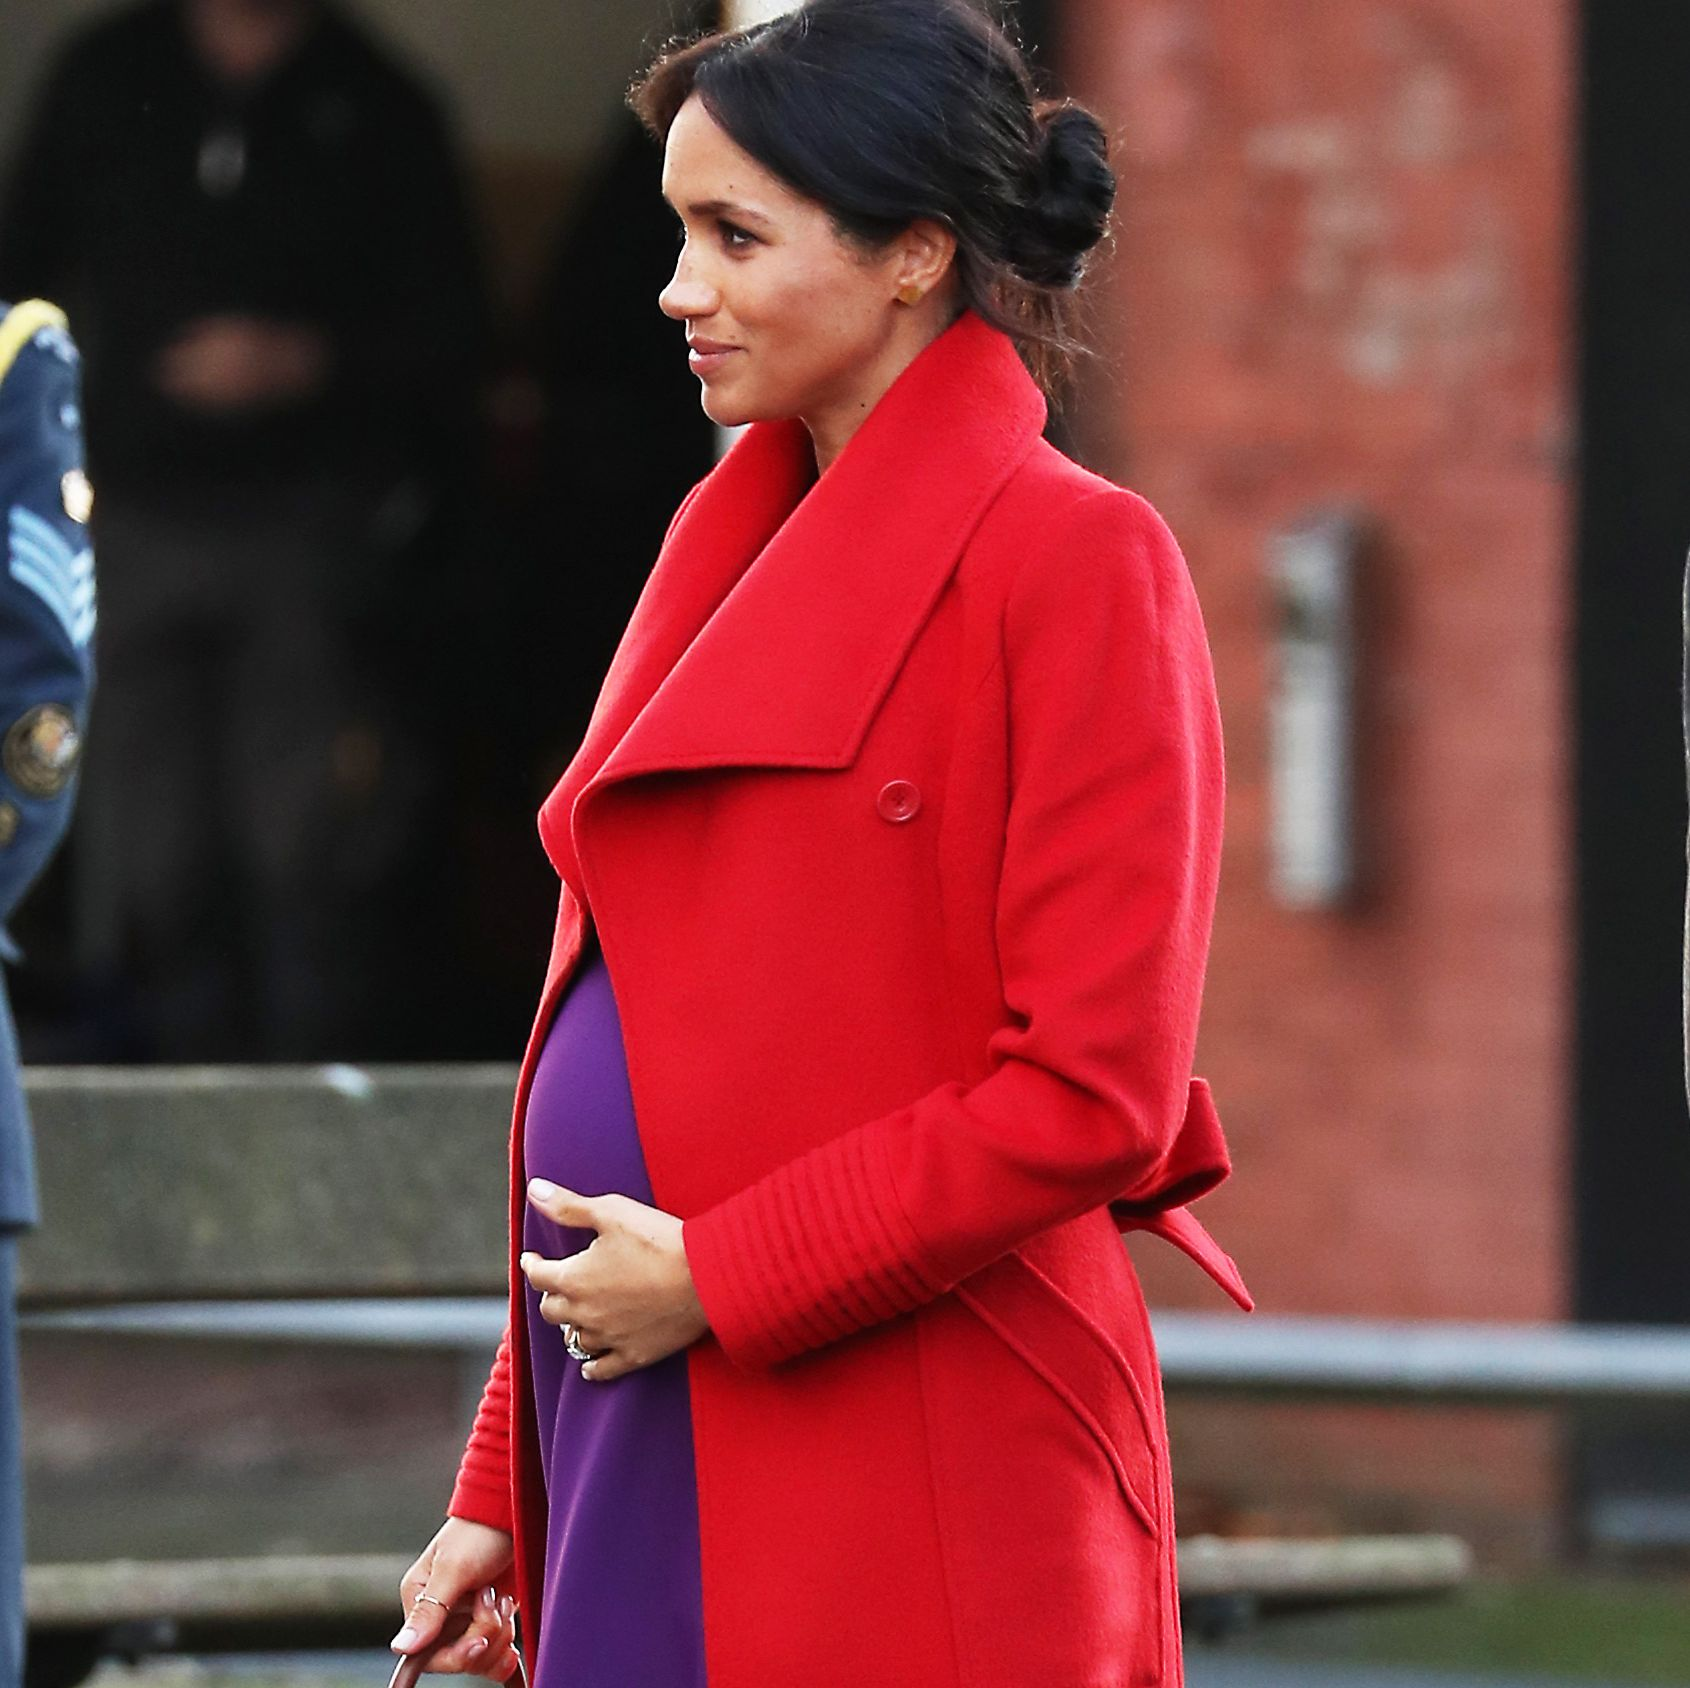 Meghan Markle Just Reportedly Confirmed Her Due Date for the Royal Baby